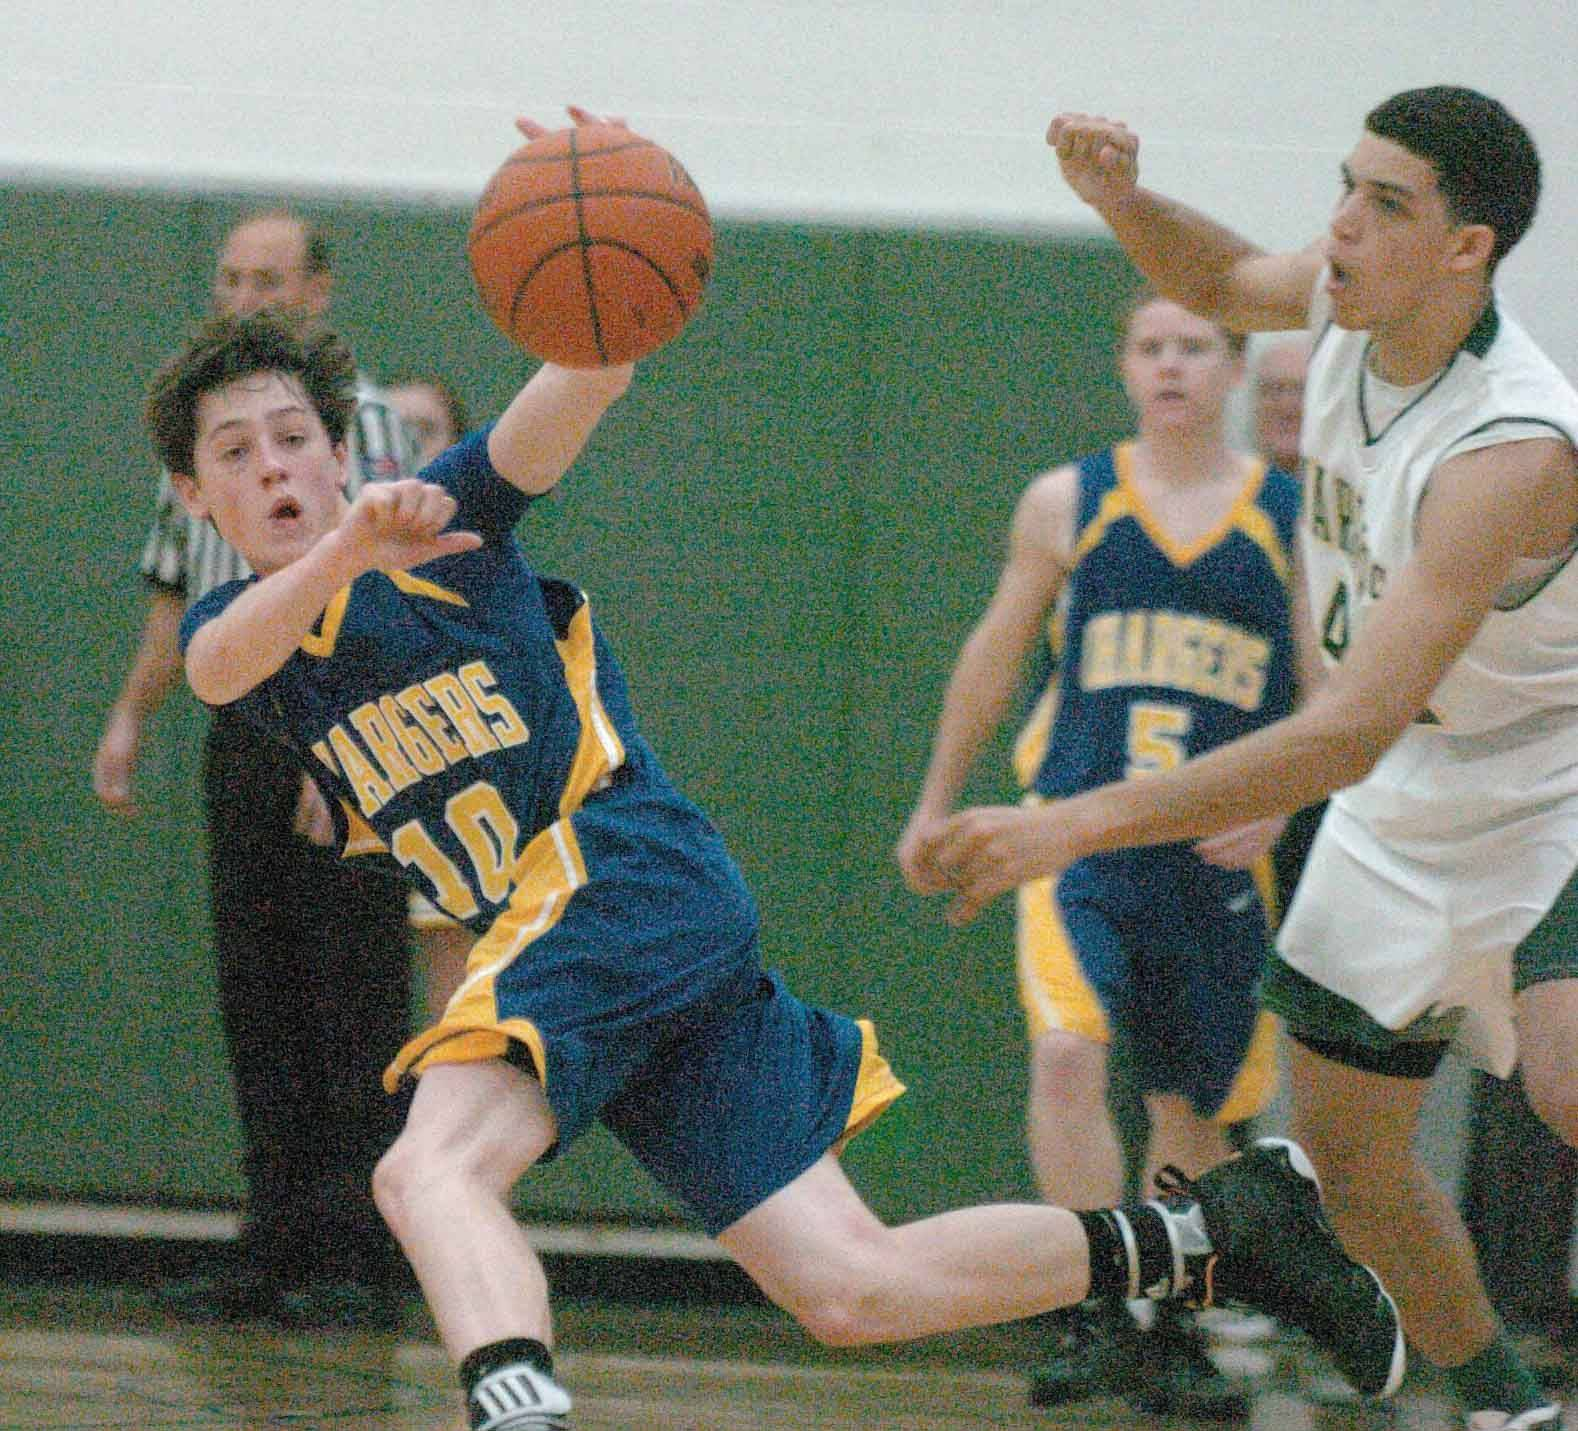 Joe Medgyesi of Aurora Central,left, tries to pull in a loose ball.